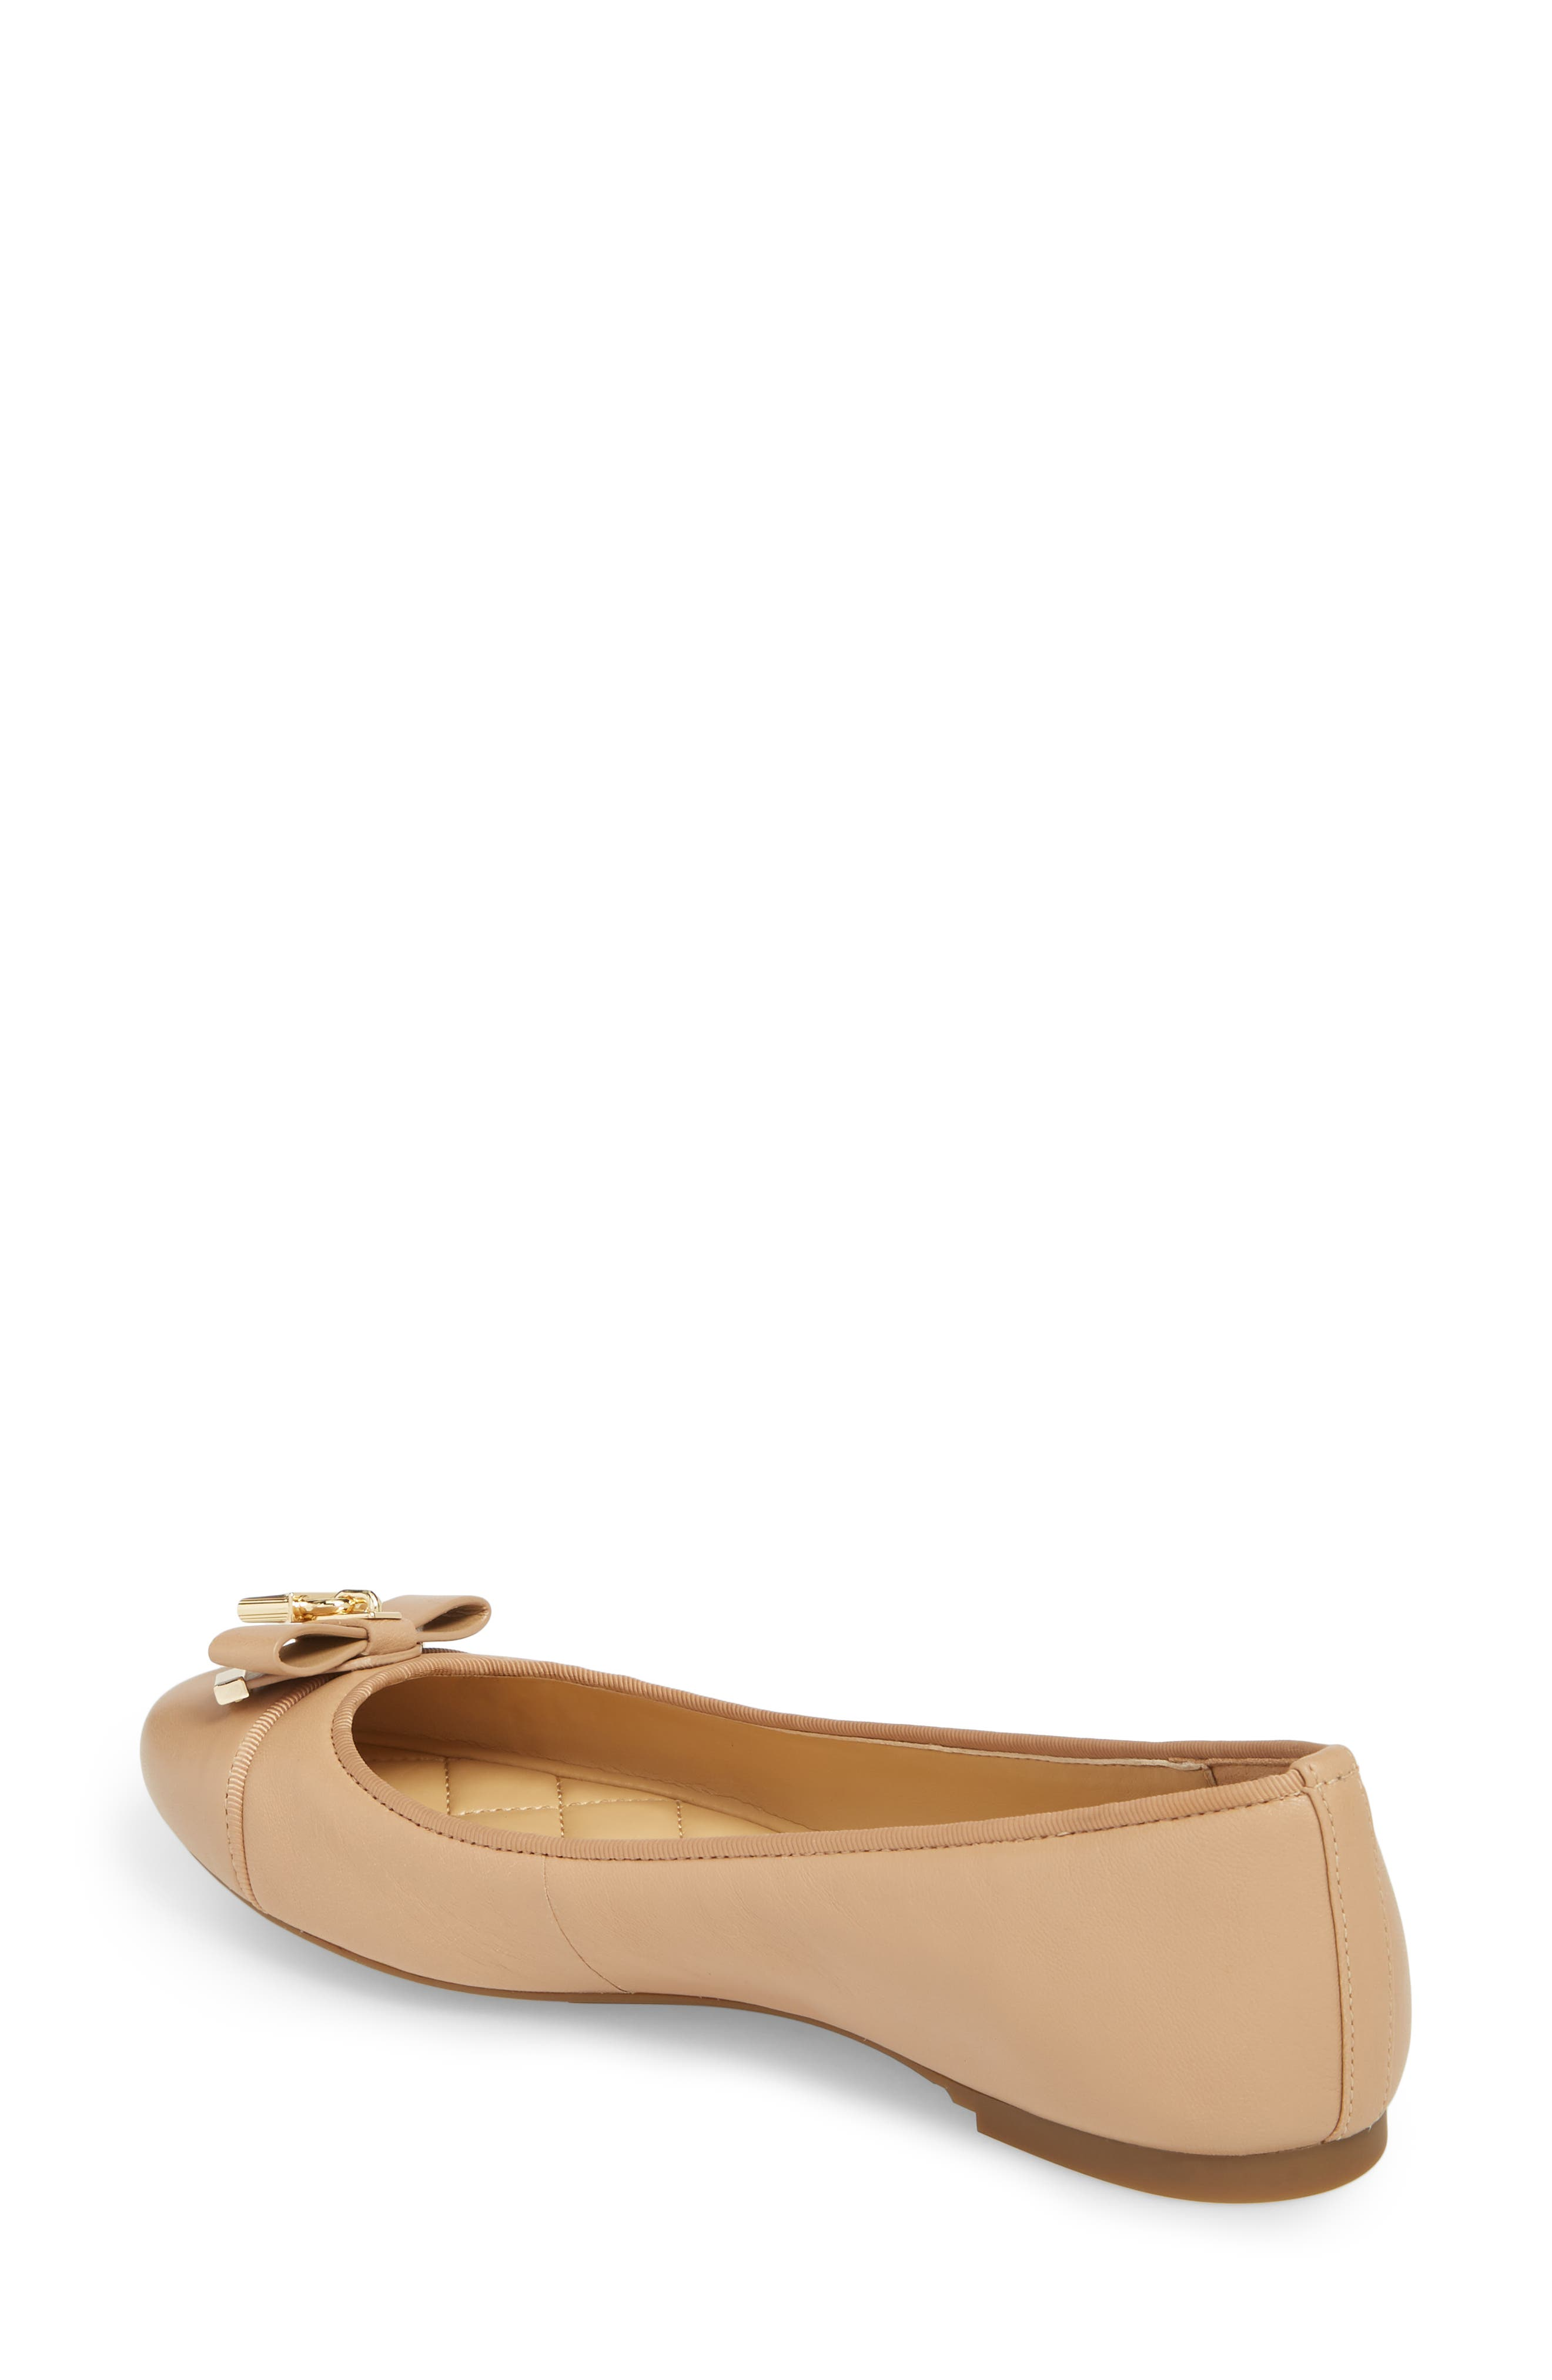 Alice Ballet Flat,                             Alternate thumbnail 2, color,                             Toffee Leather